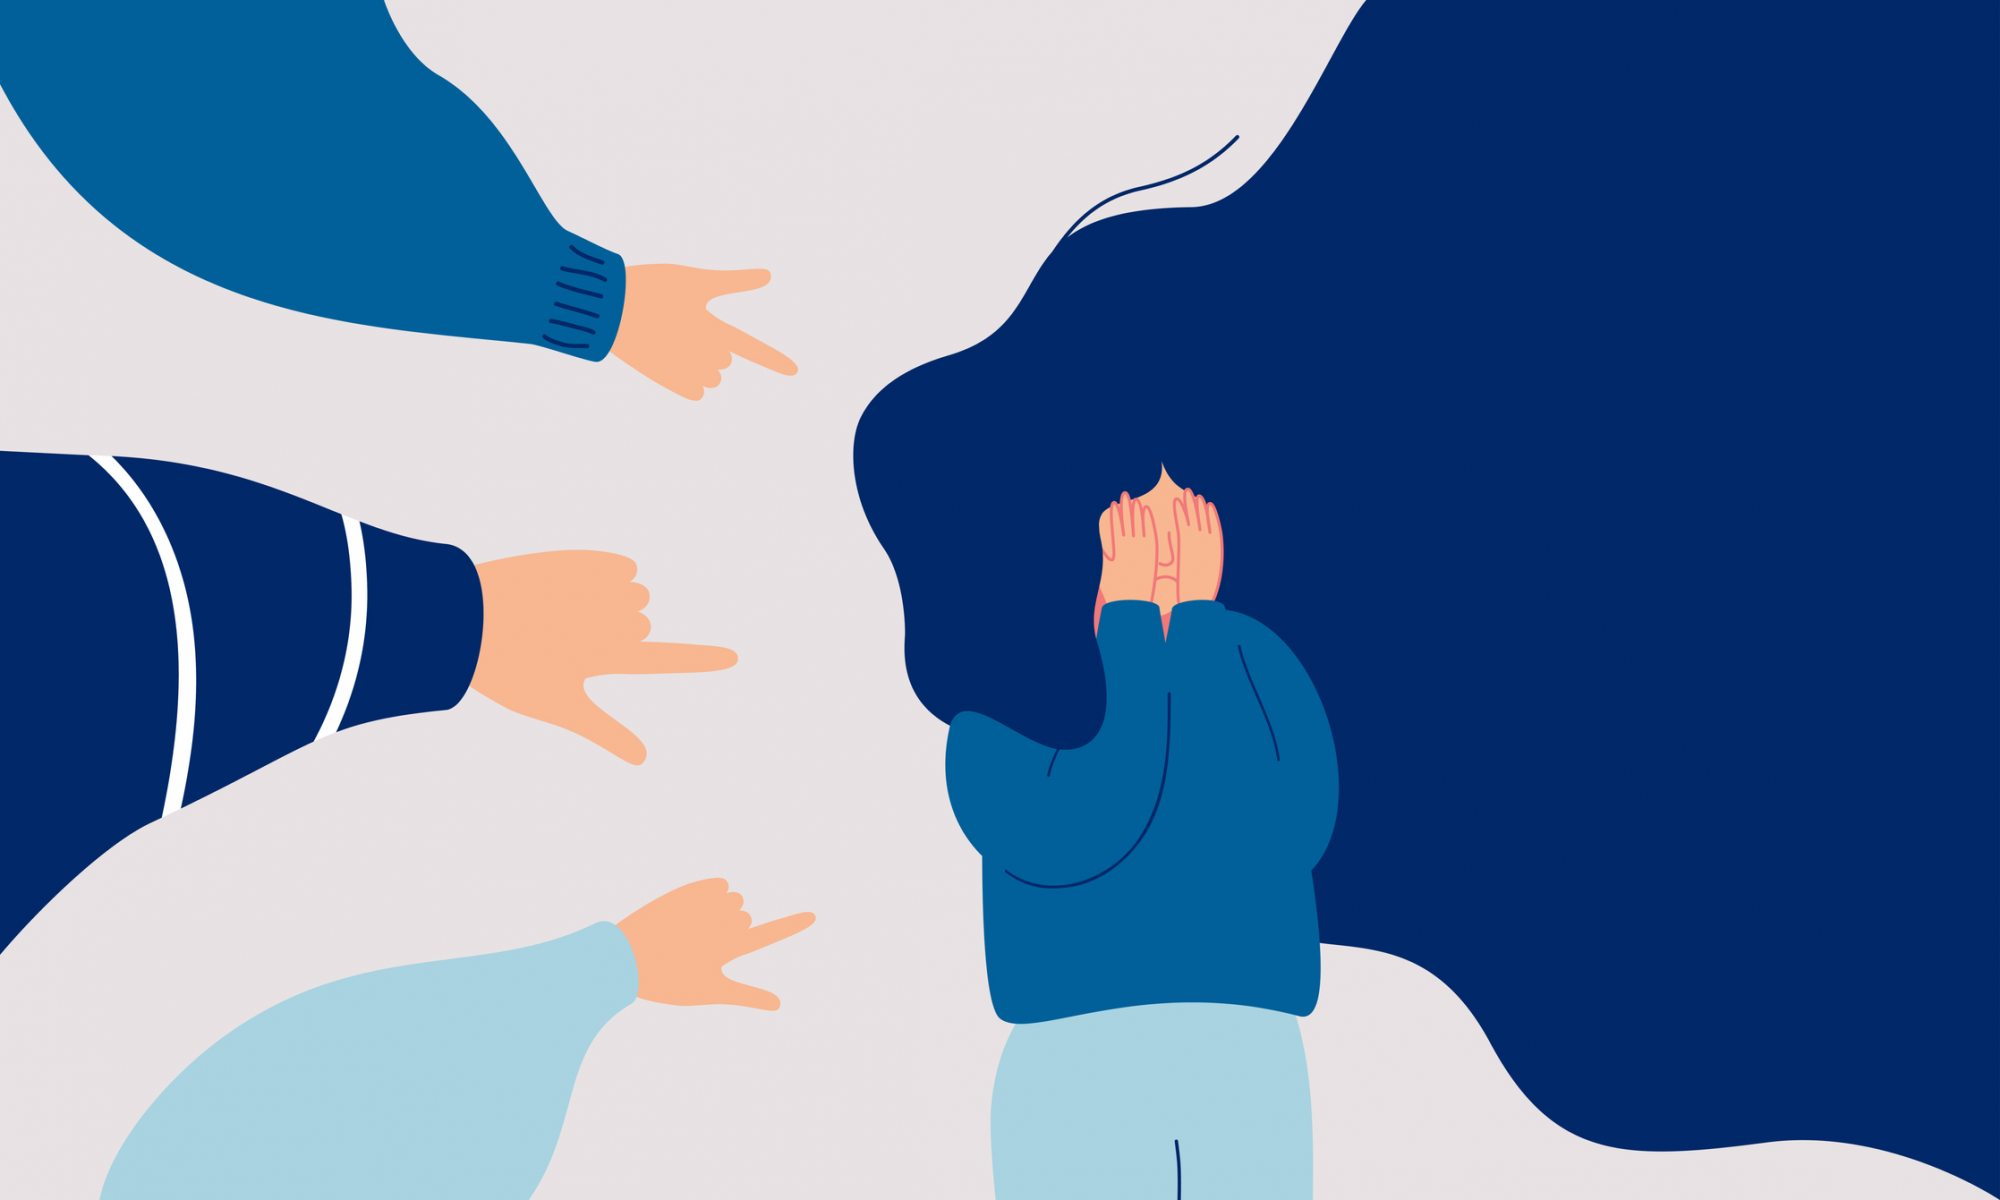 People pointing fingers at a person illustration